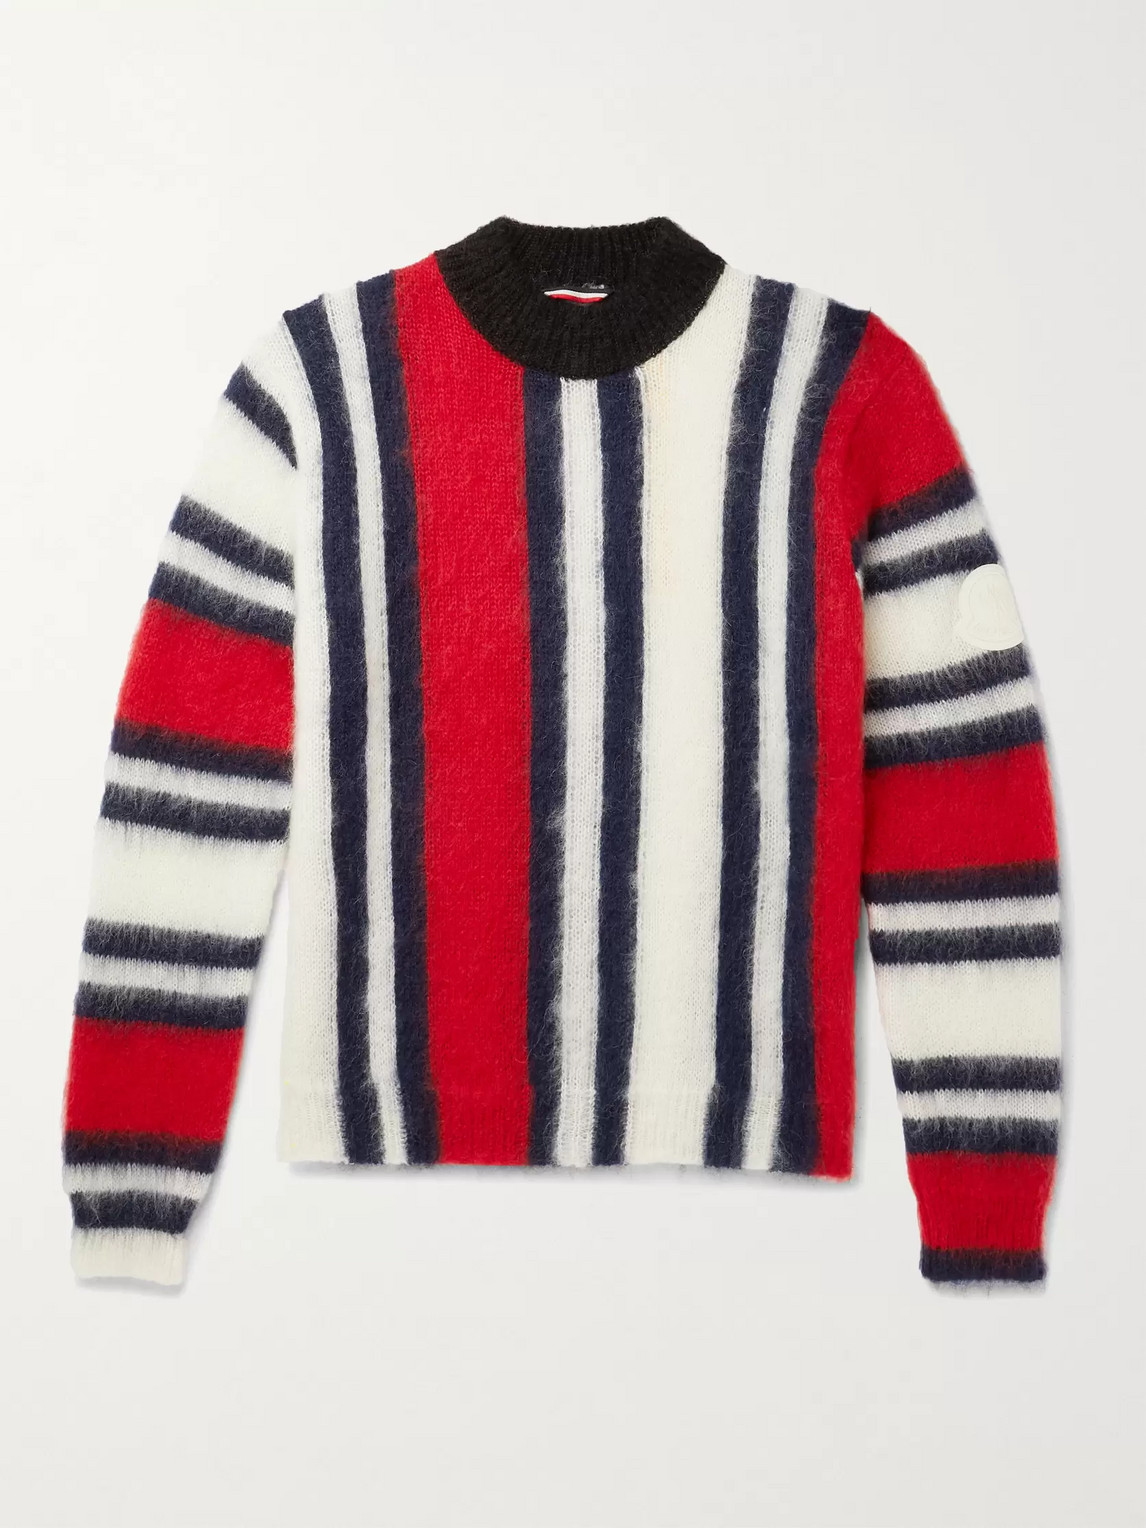 Moncler Genius 2 MONCLER 1952 STRIPED MOHAIR-BLEND MOCK-NECK SWEATER